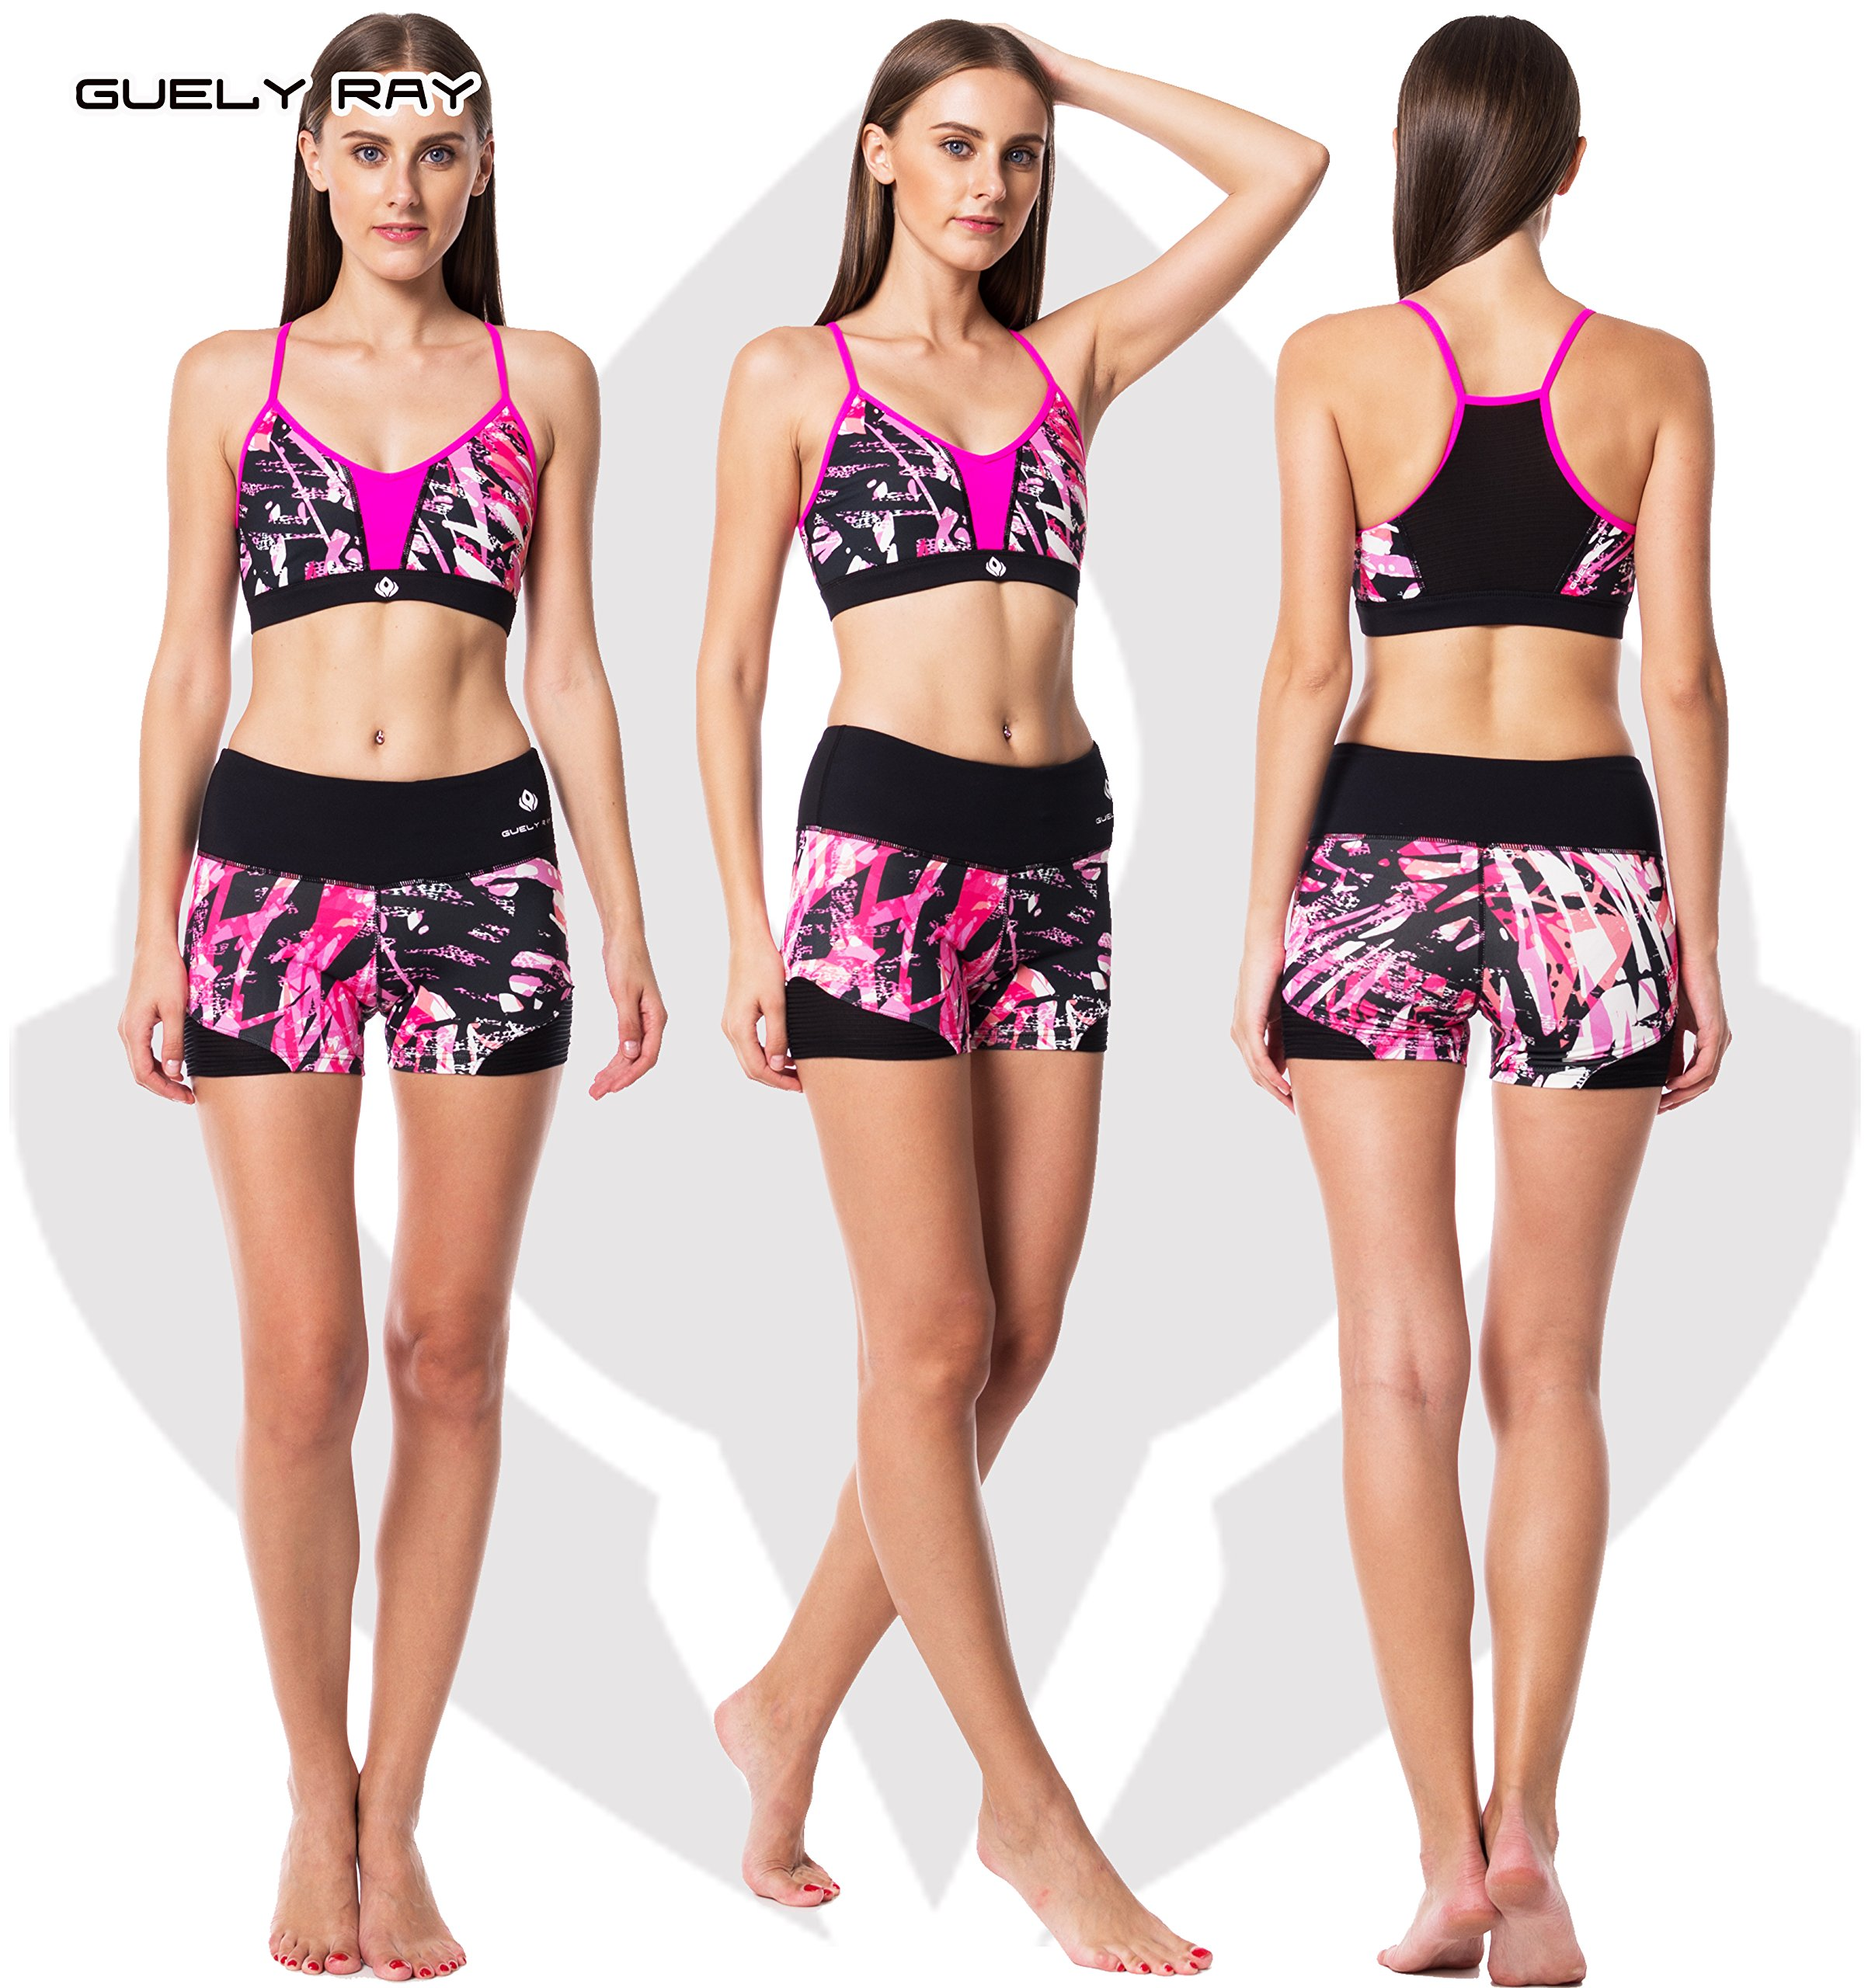 Guely Ray Women's Active Shorts for Workout & Training with Hidden Pocket 11 Styles (L (US 9-11: Waist 29-30.5; Hip 38-39.5), Pink Jungle 3.6'' Inseam) by Guely Ray (Image #5)